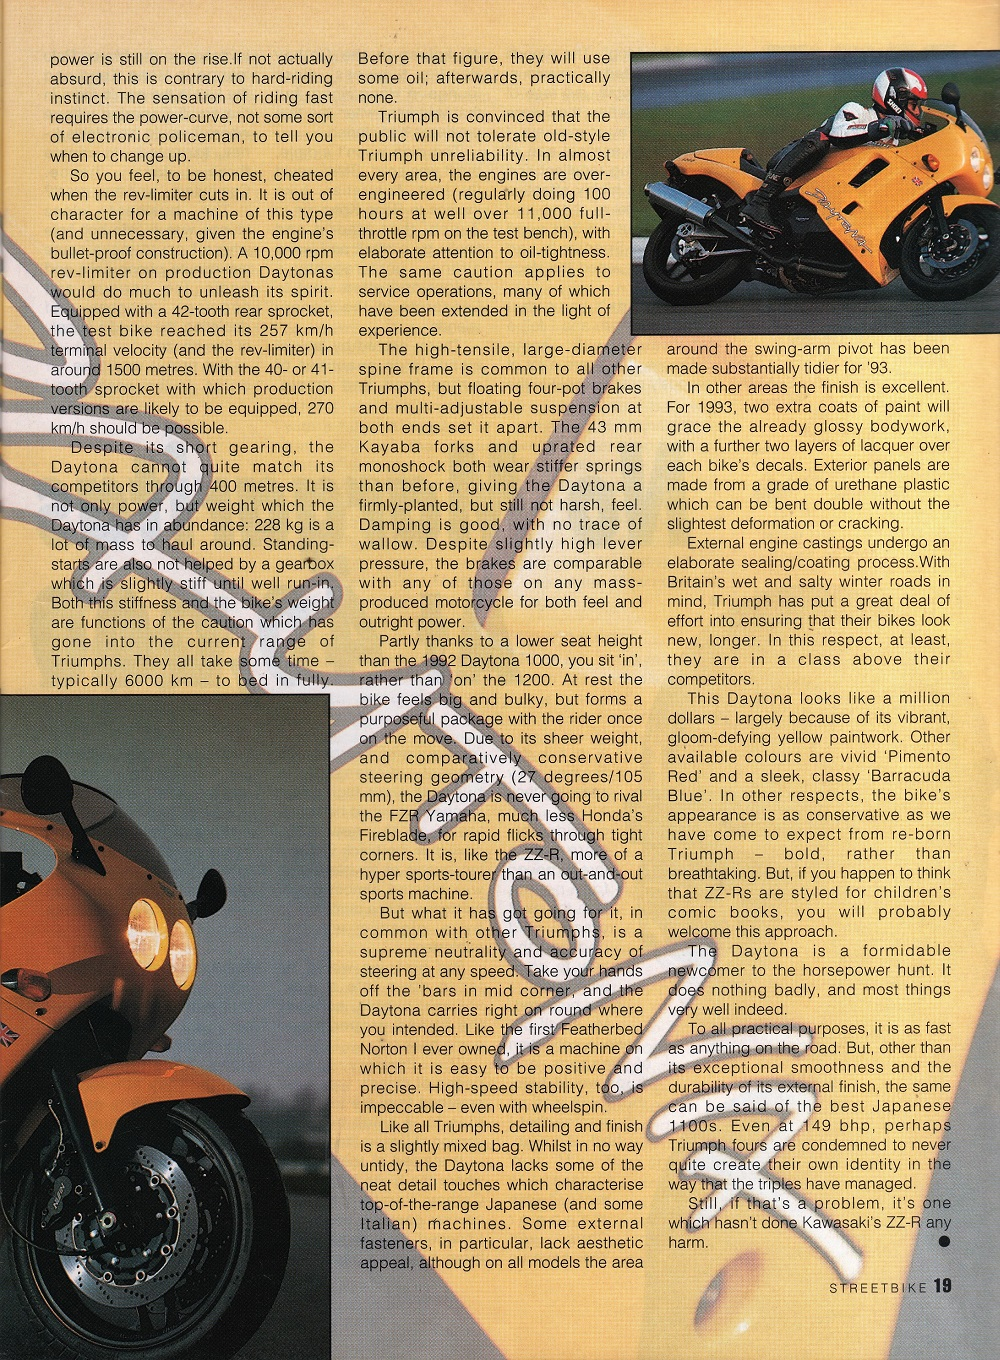 1993 Triumph Daytona 1200 road test. 2.jpg